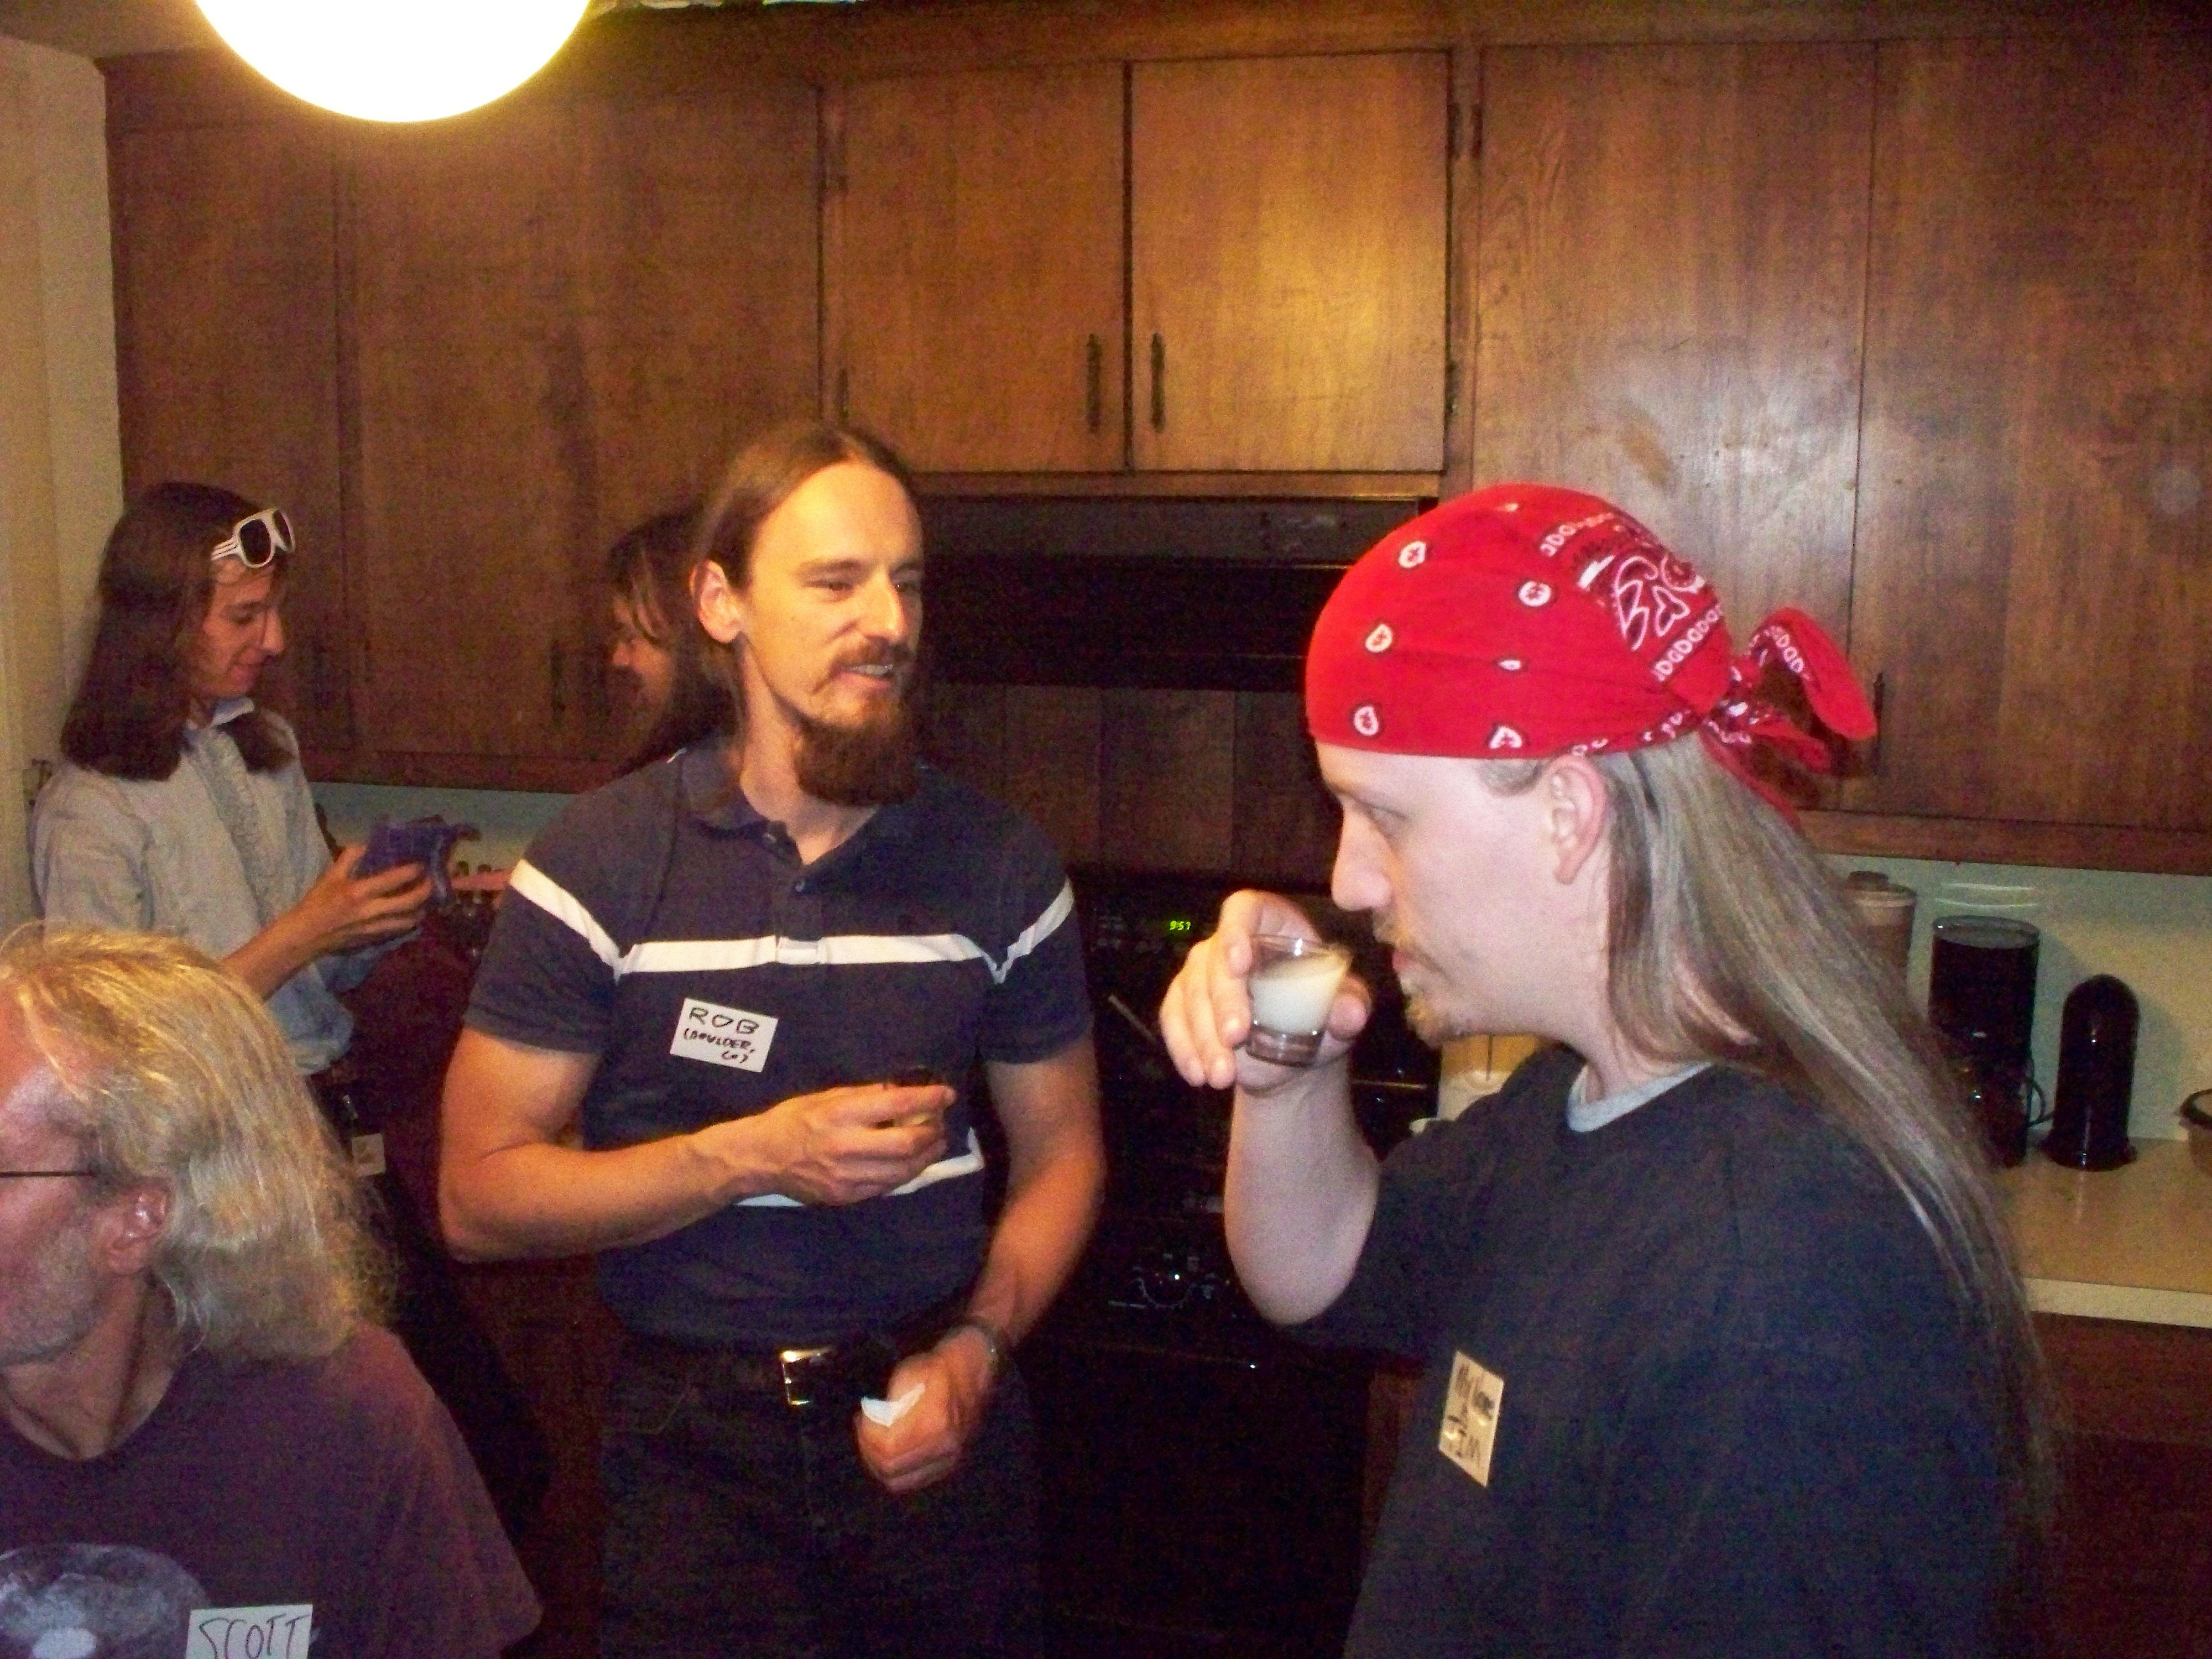 Scott Sacrilege Stardust Rob and Tim in the Kitchen